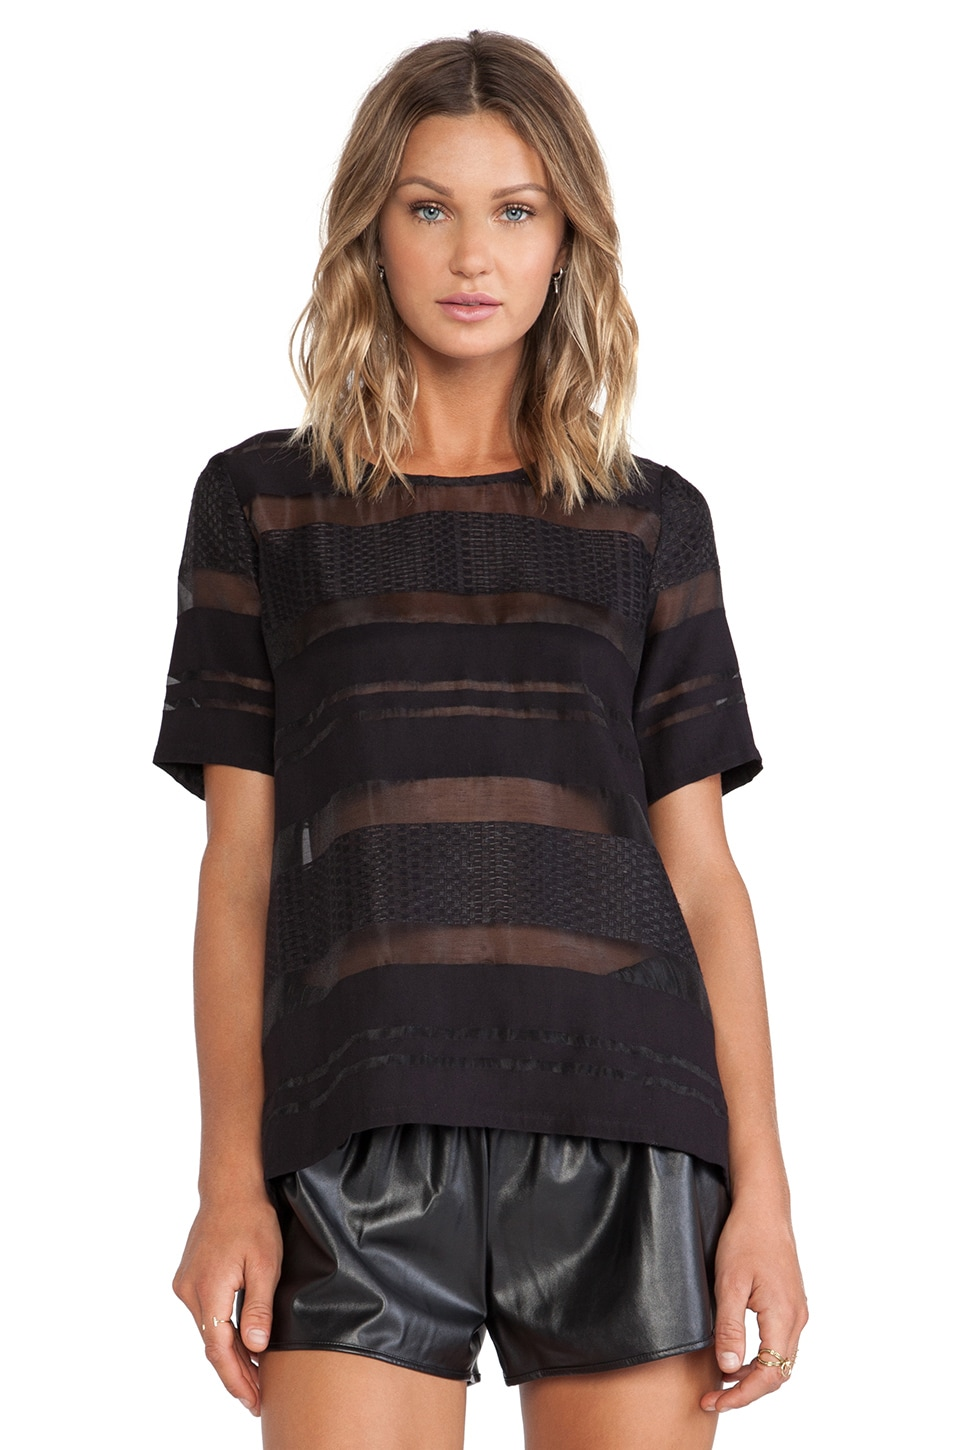 J.O.A. Sheer Striped Short Sleeve Top in Black